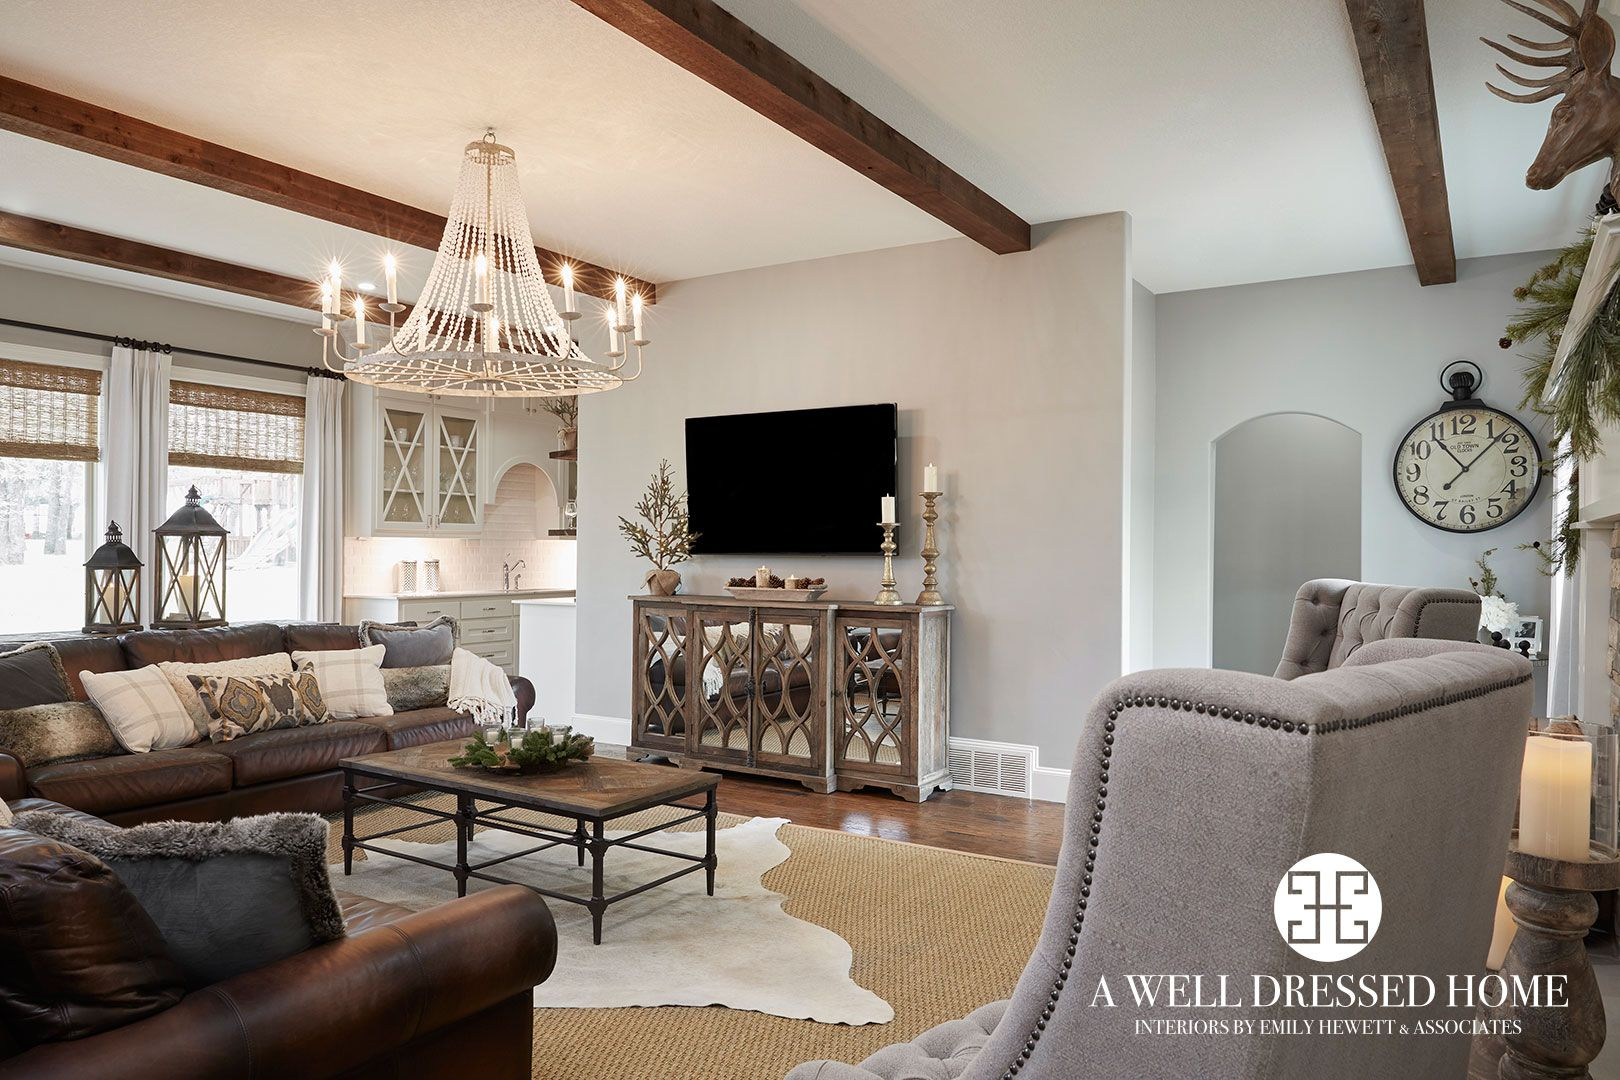 Residential Design Portfolio Categories @ A Well Dressed Home | Blue on well dressed home decor, well dressed windows, wall decal designs, furniture designs, well dressed family, well dressed home christmas, wall frame designs, well dressed shoes,